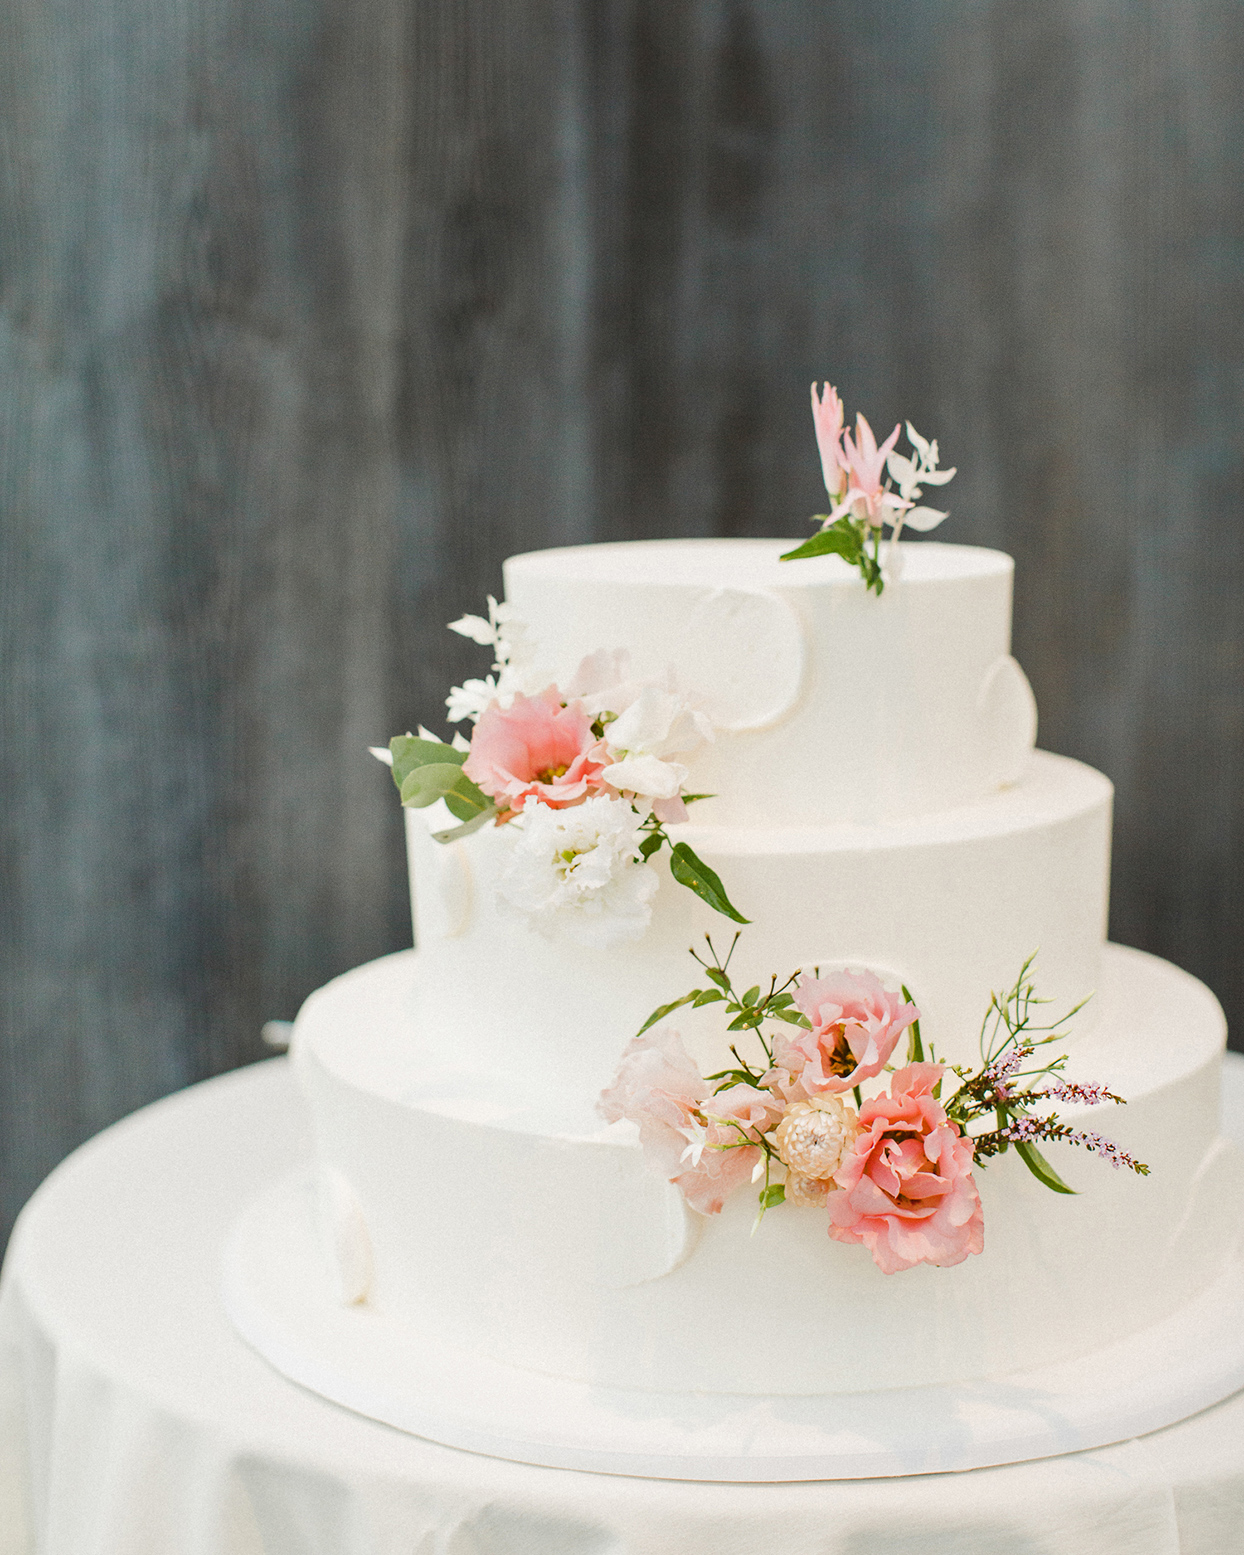 grace john white wedding cake with simple pink flowers